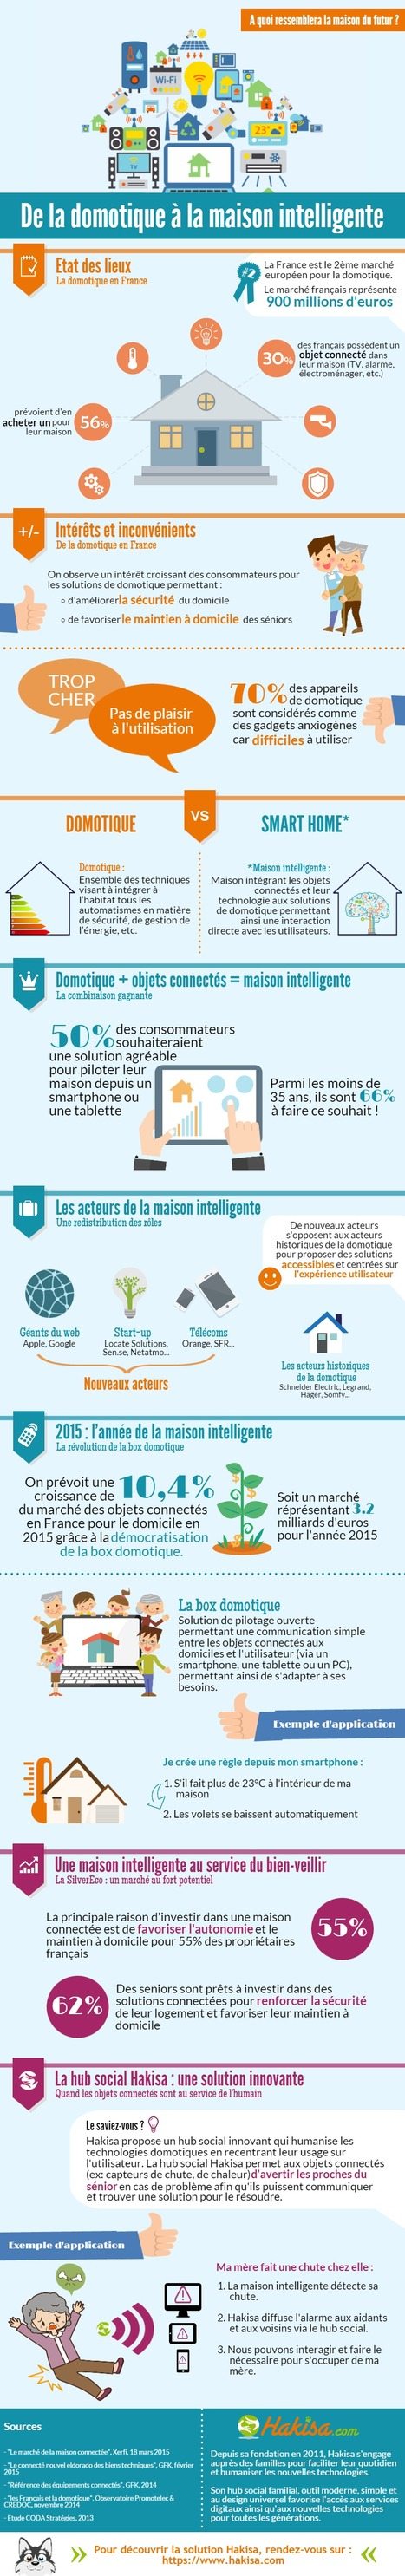 En partant de la domotique on arrive à la maison intelligente #infographie | Hightech, domotique, robotique et objets connectés sur le Net | Scoop.it